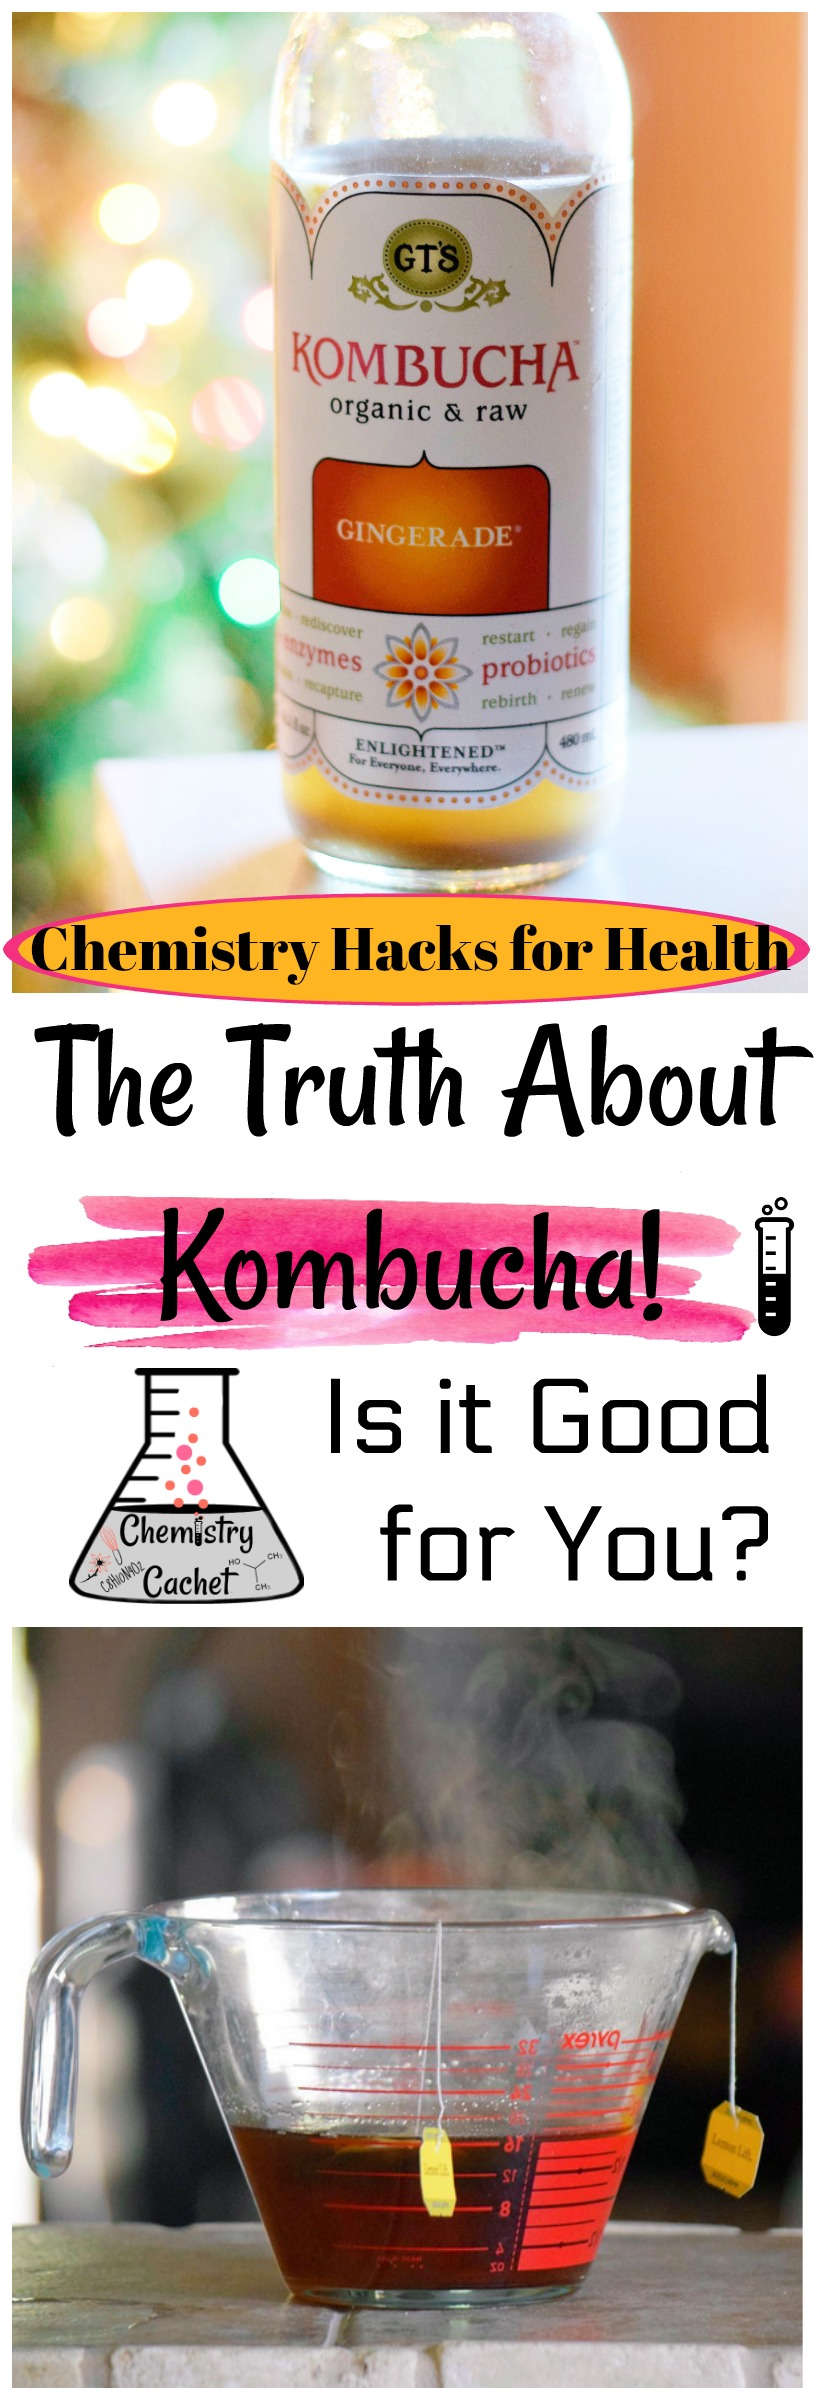 Chemistry Hacks for Health The Truth About Kombucha! Is Kombucha good for you See kombucha benefits on chemistrycachet.com